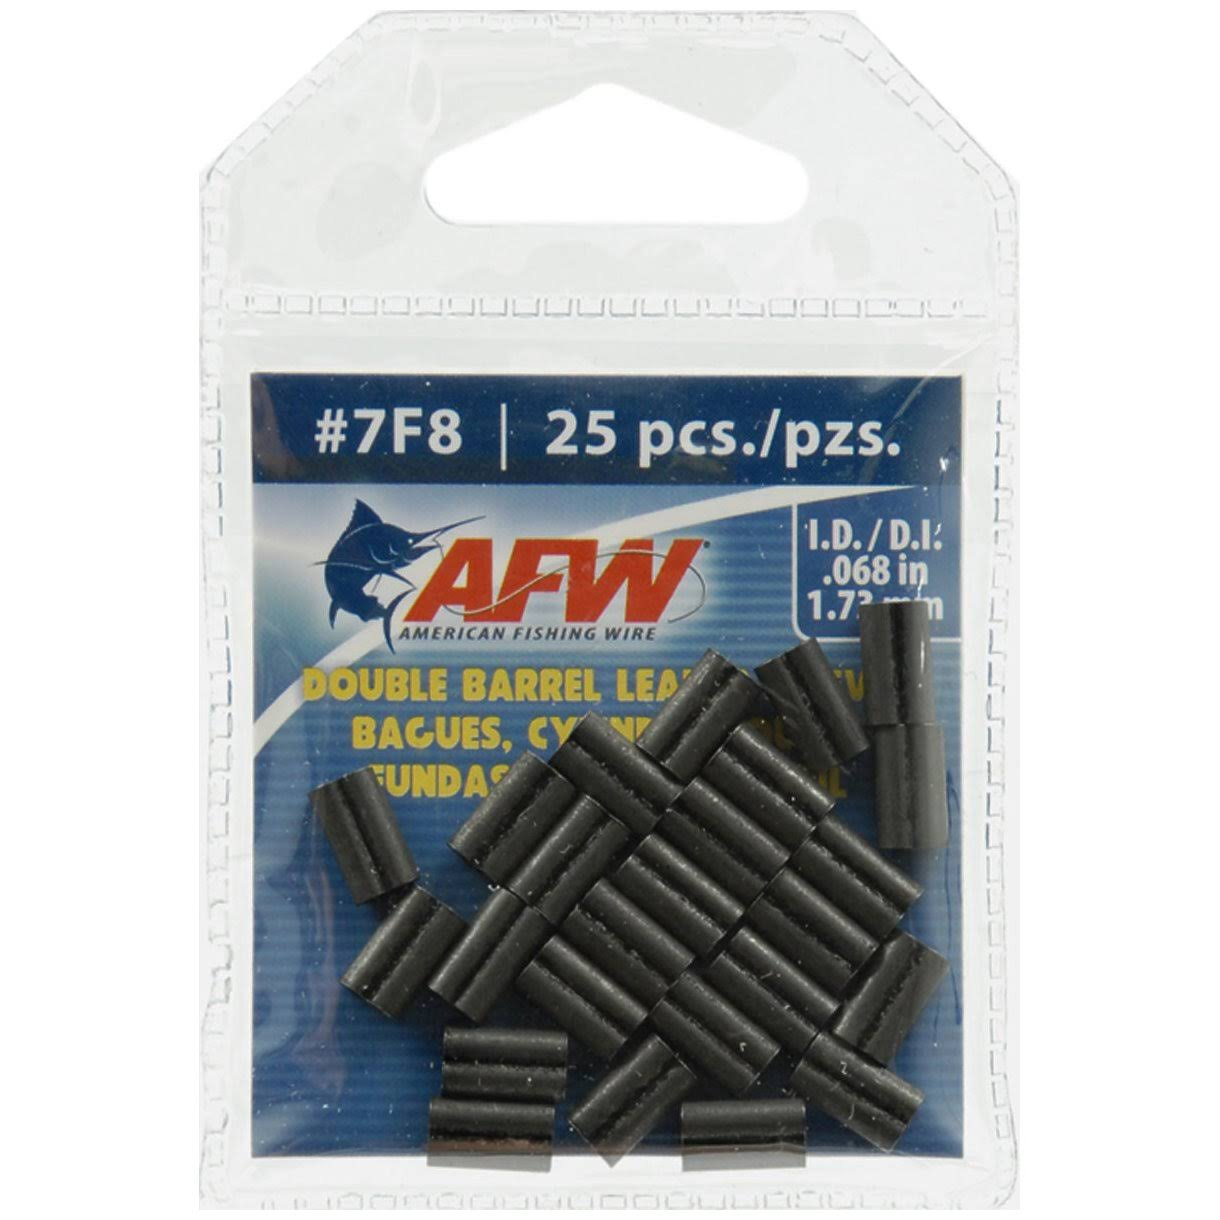 American Fishing Wire Double Barrel Sleeve - #7, Black, 25pcs